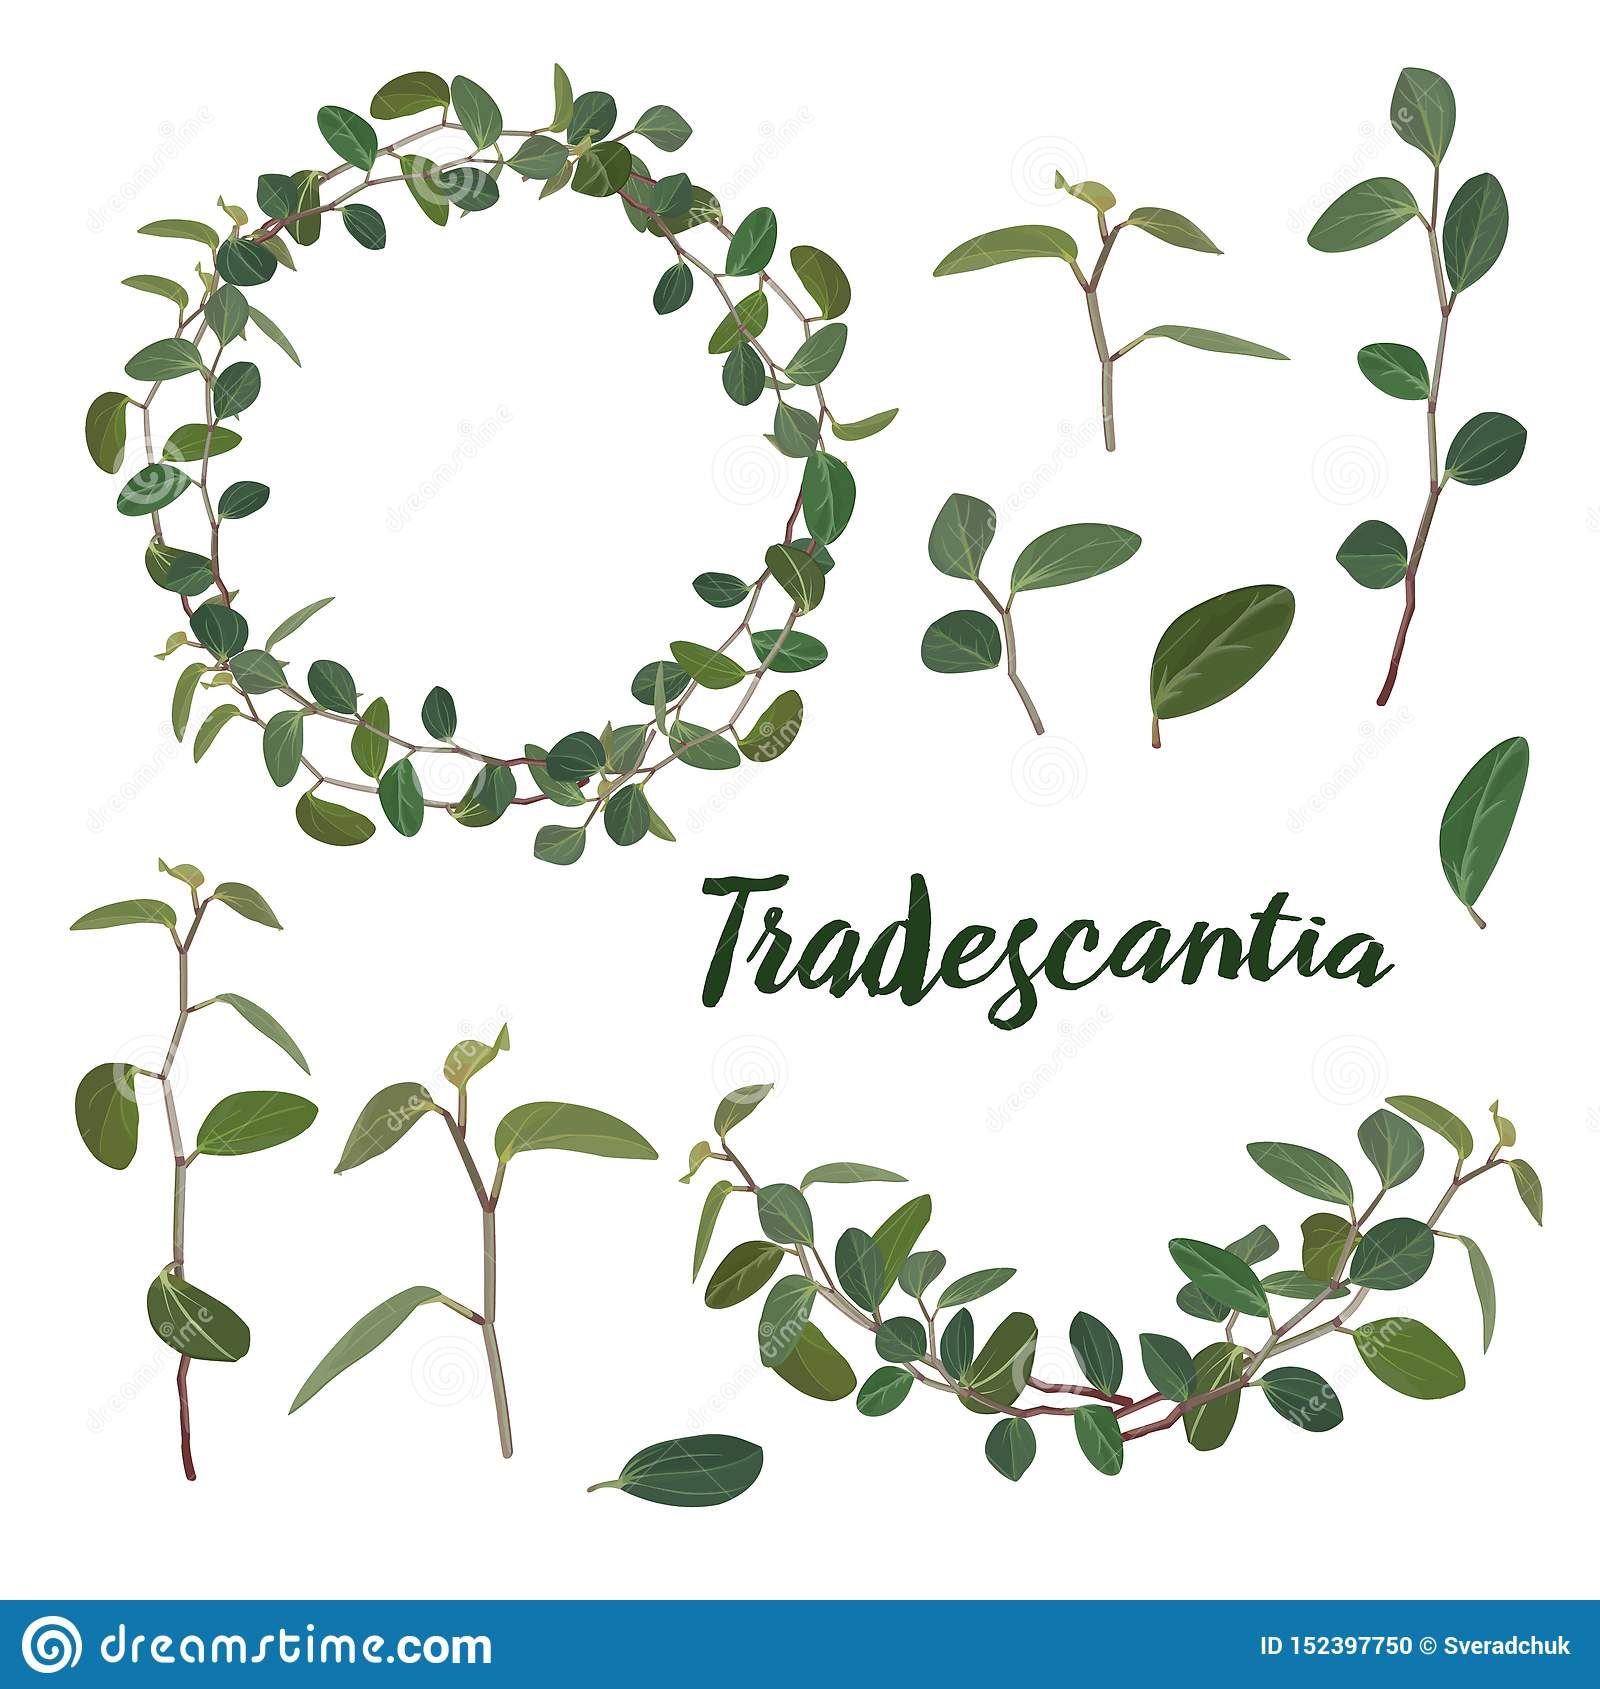 Twigs and leaves of the tradiscation in a wreath and a garland on a white background. Vector.